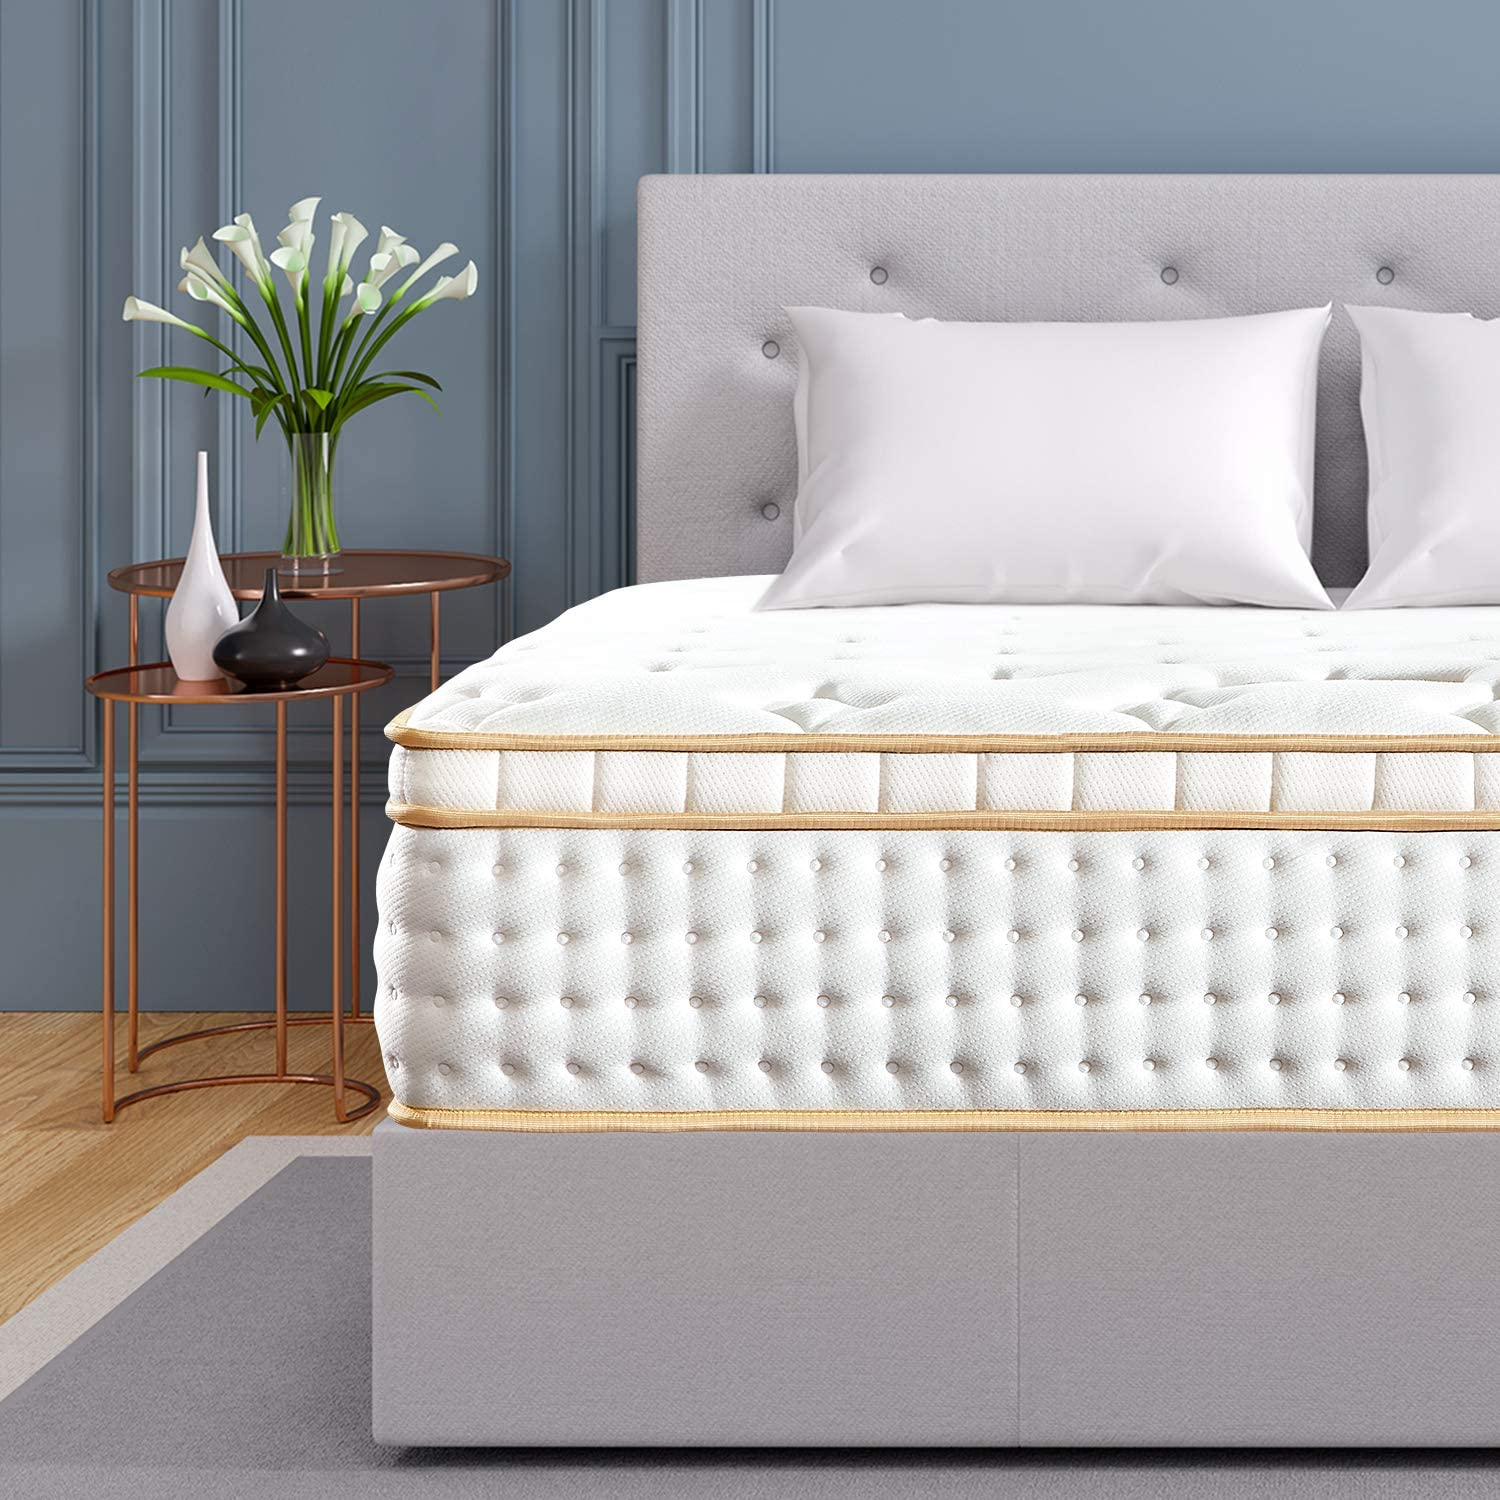 Bedstory Gel Memory Foam Mattress